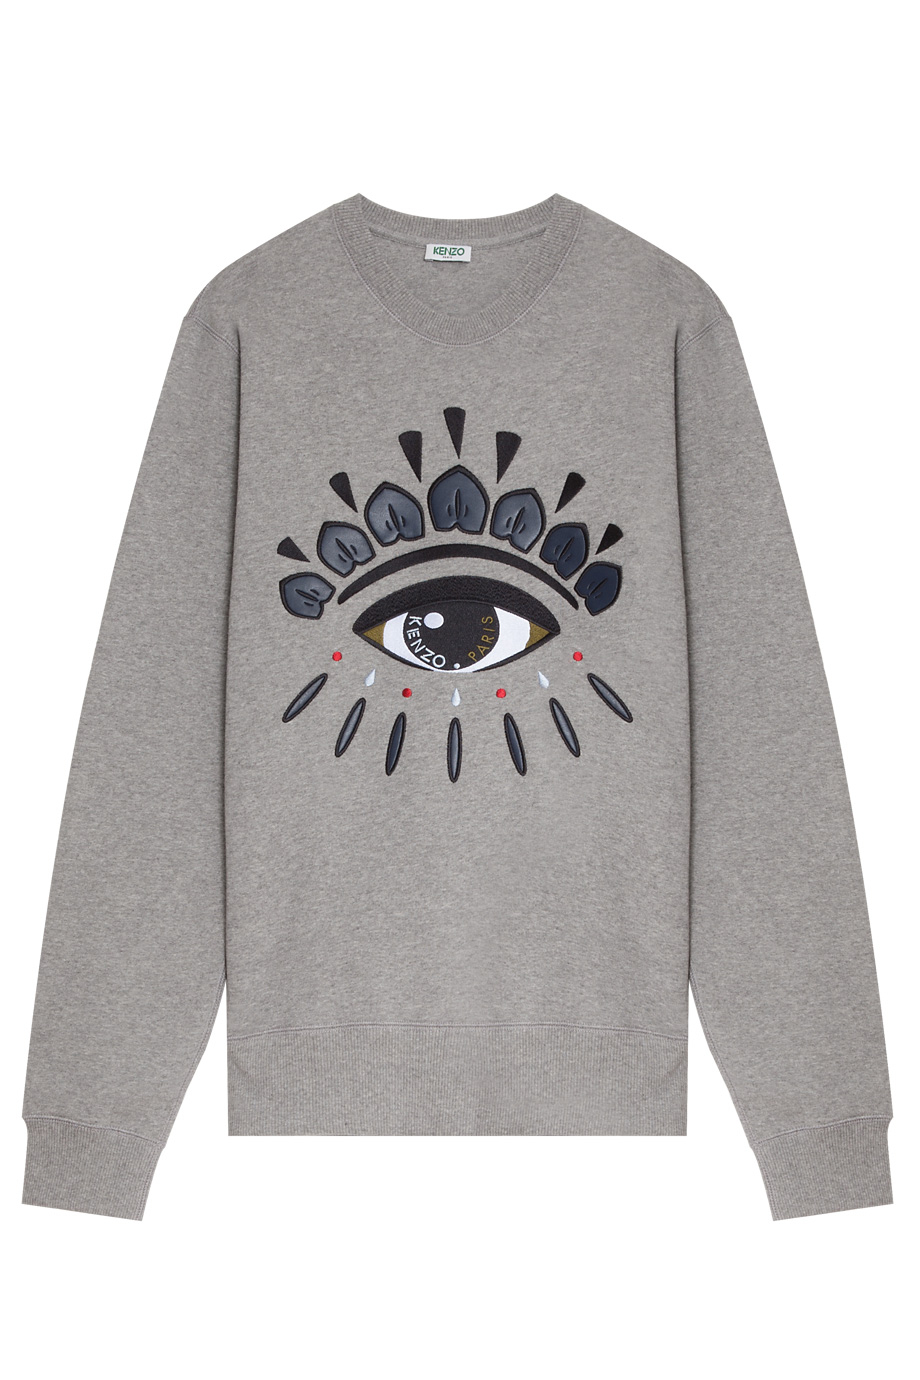 kenzo eye embroidered sweater in gray for men grey lyst. Black Bedroom Furniture Sets. Home Design Ideas